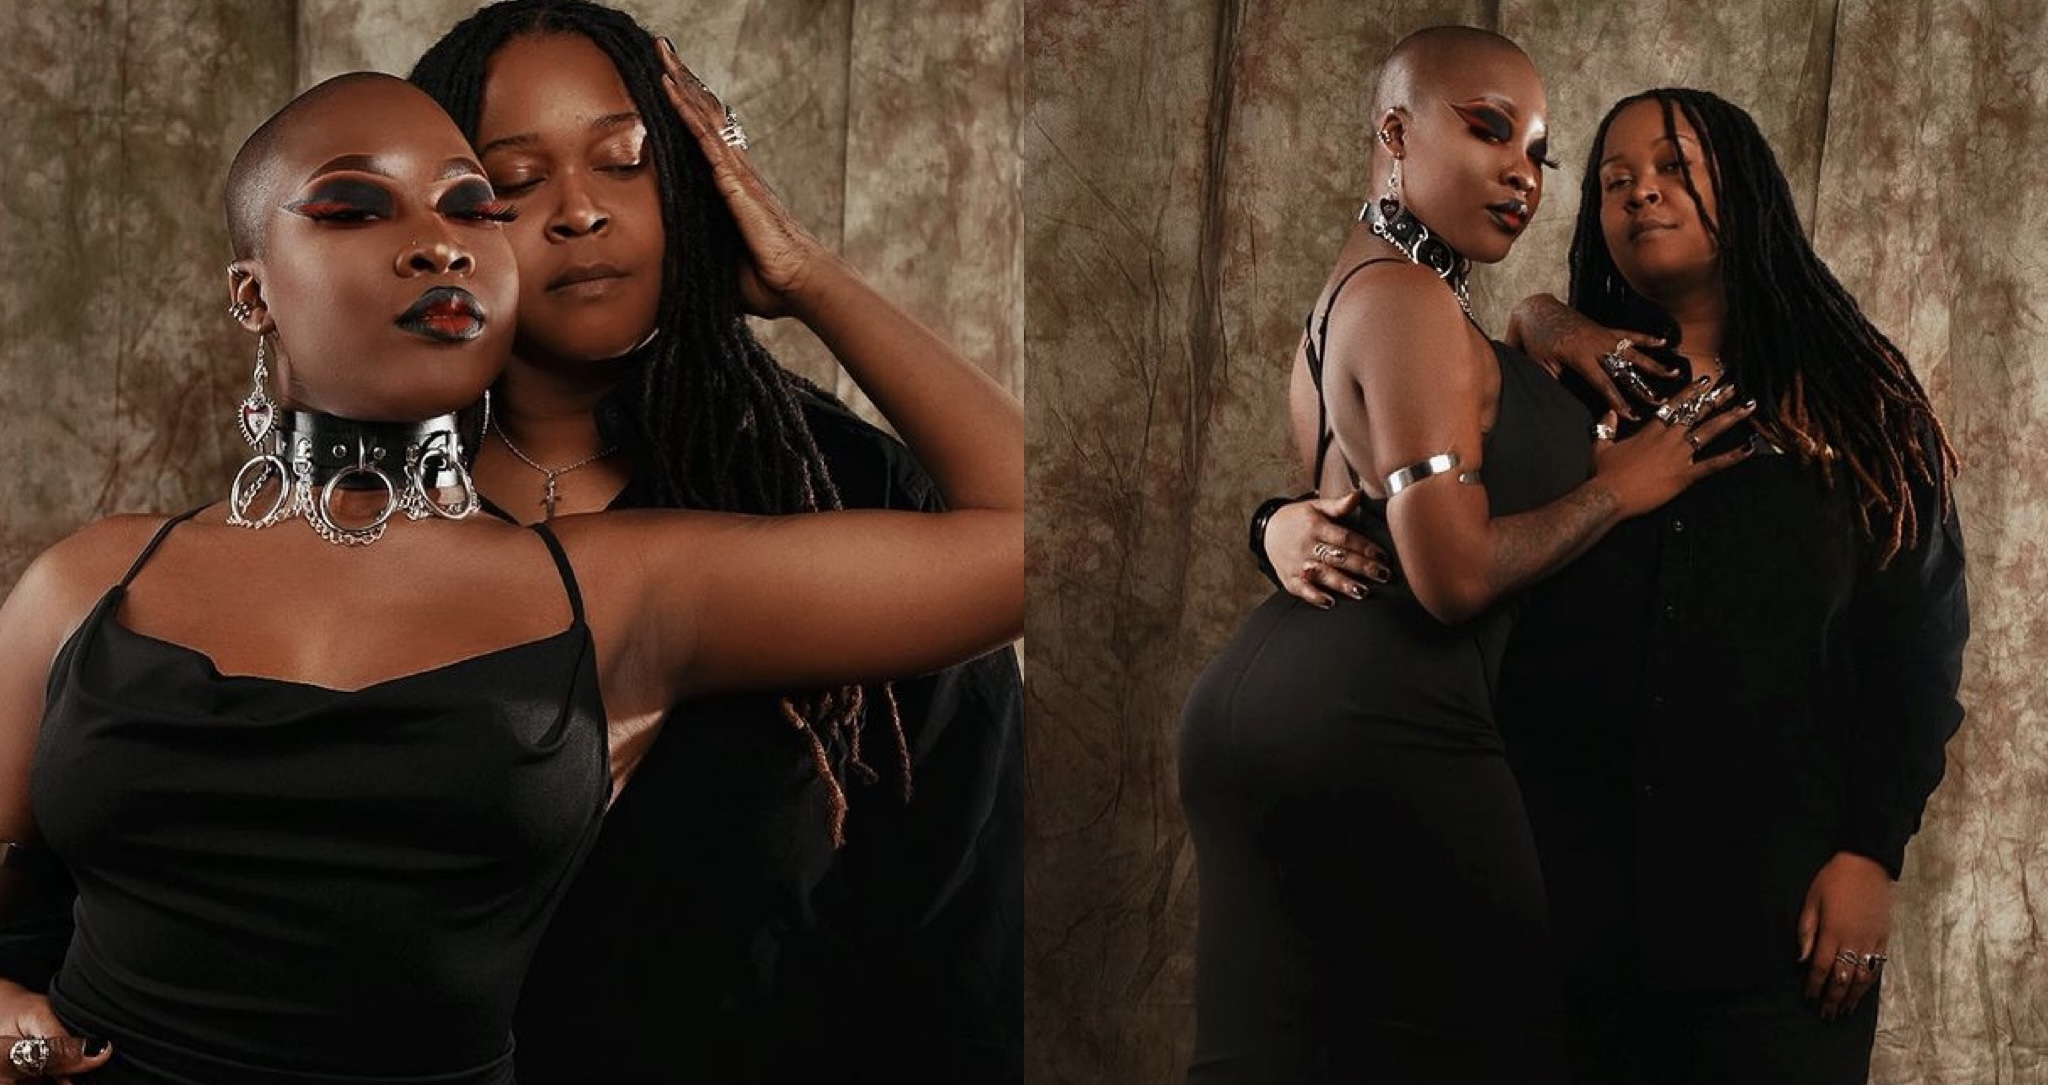 Charley Boy's daughter, Dewy Oputa marks 3 years anniversary with her L3sbian partner (photo)